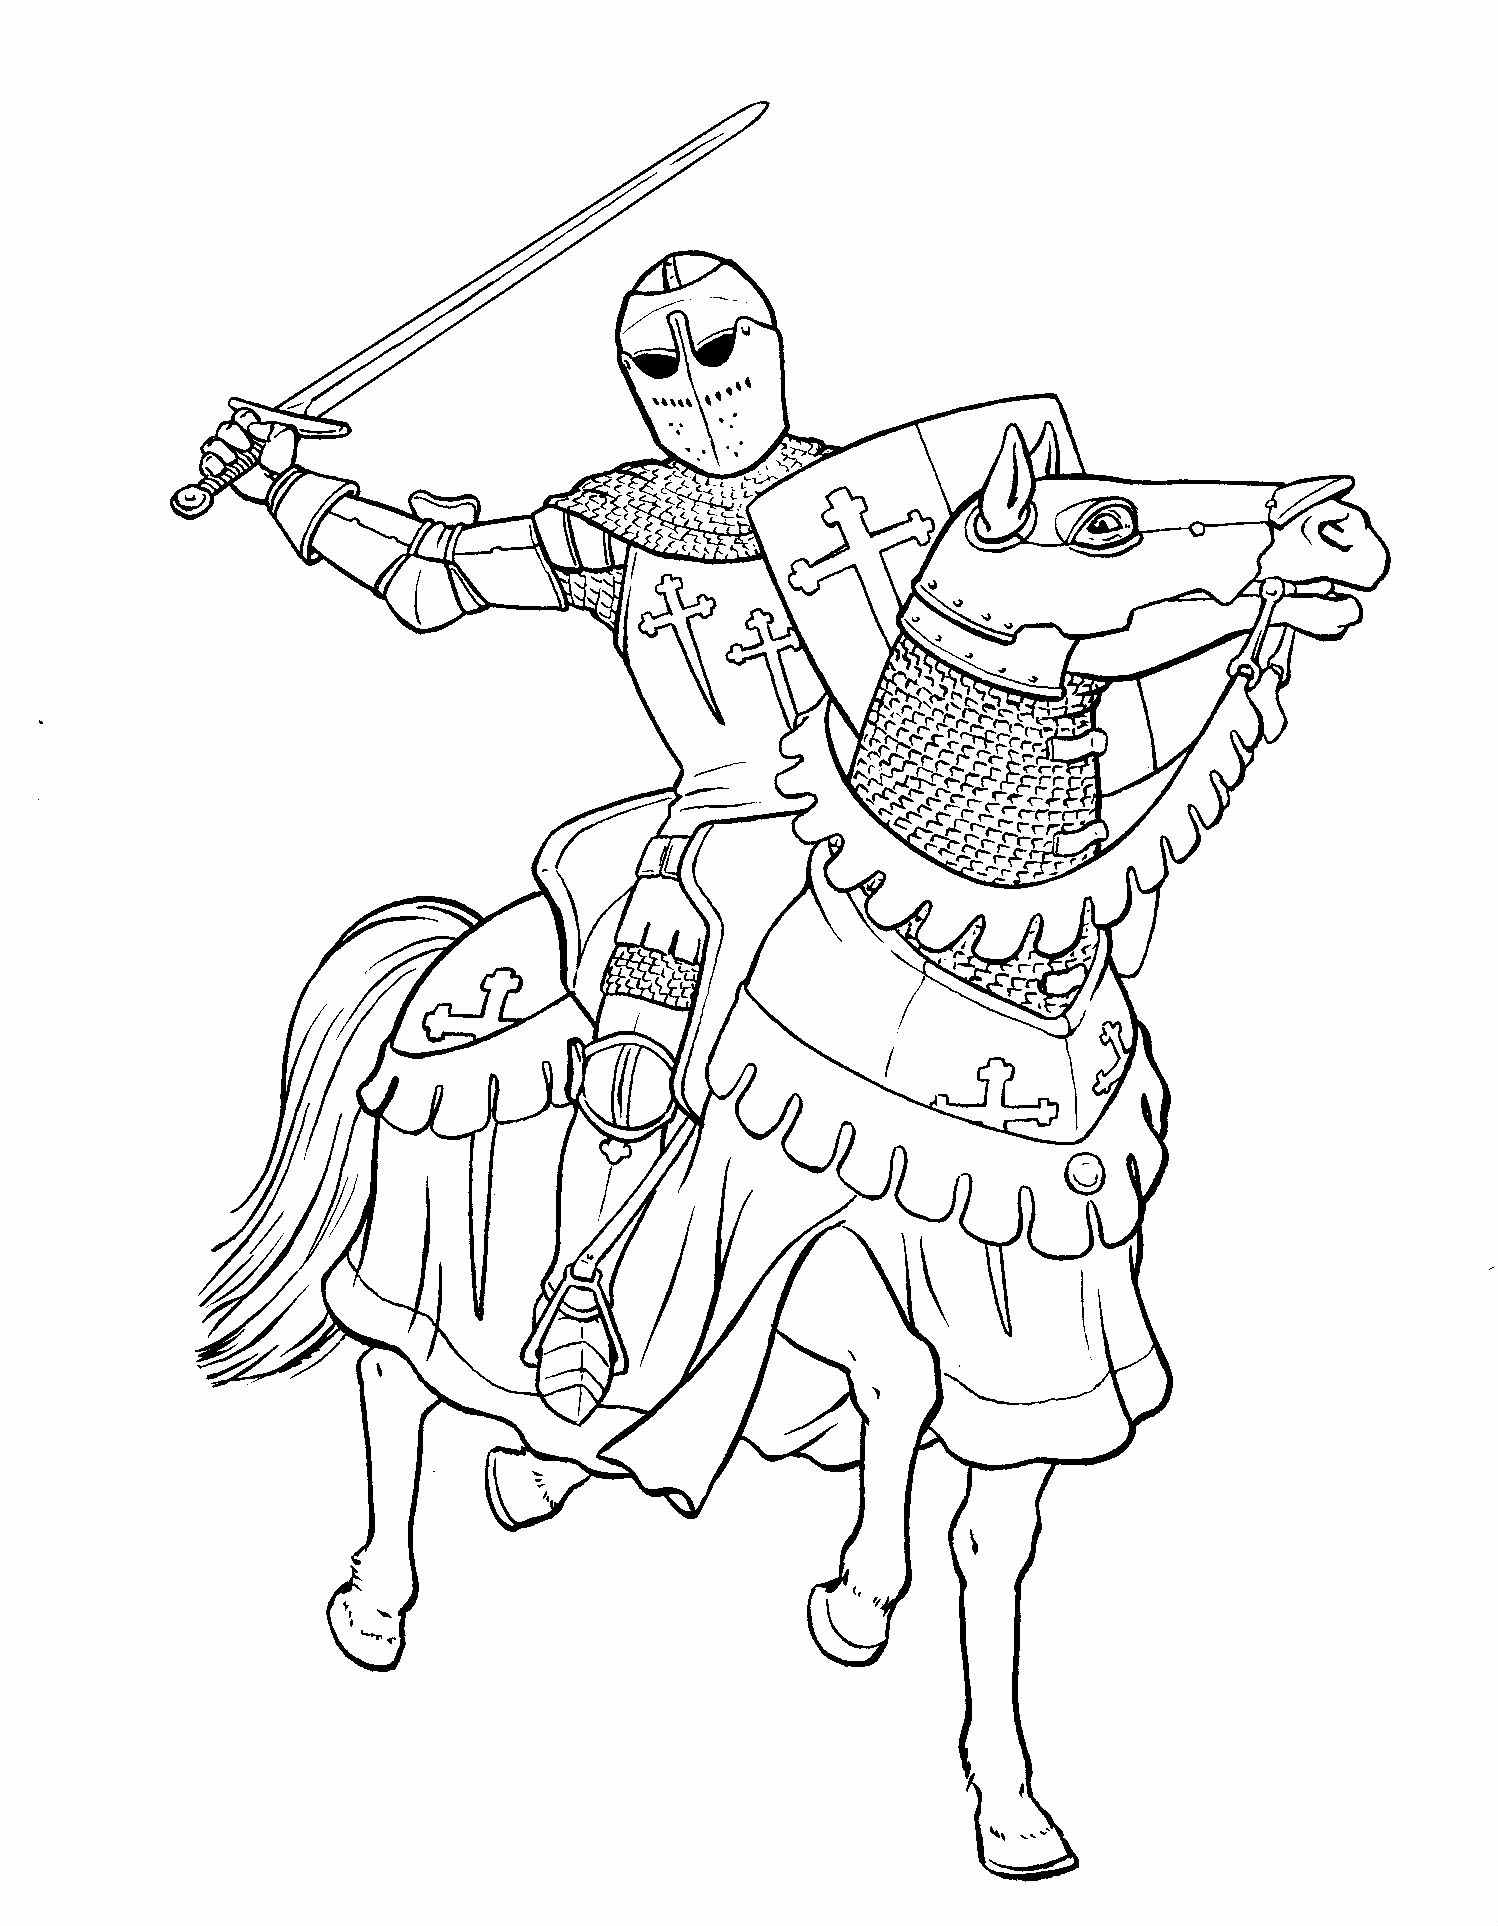 Knight With Sword Coloring Page Colorbook Pinterest Knight